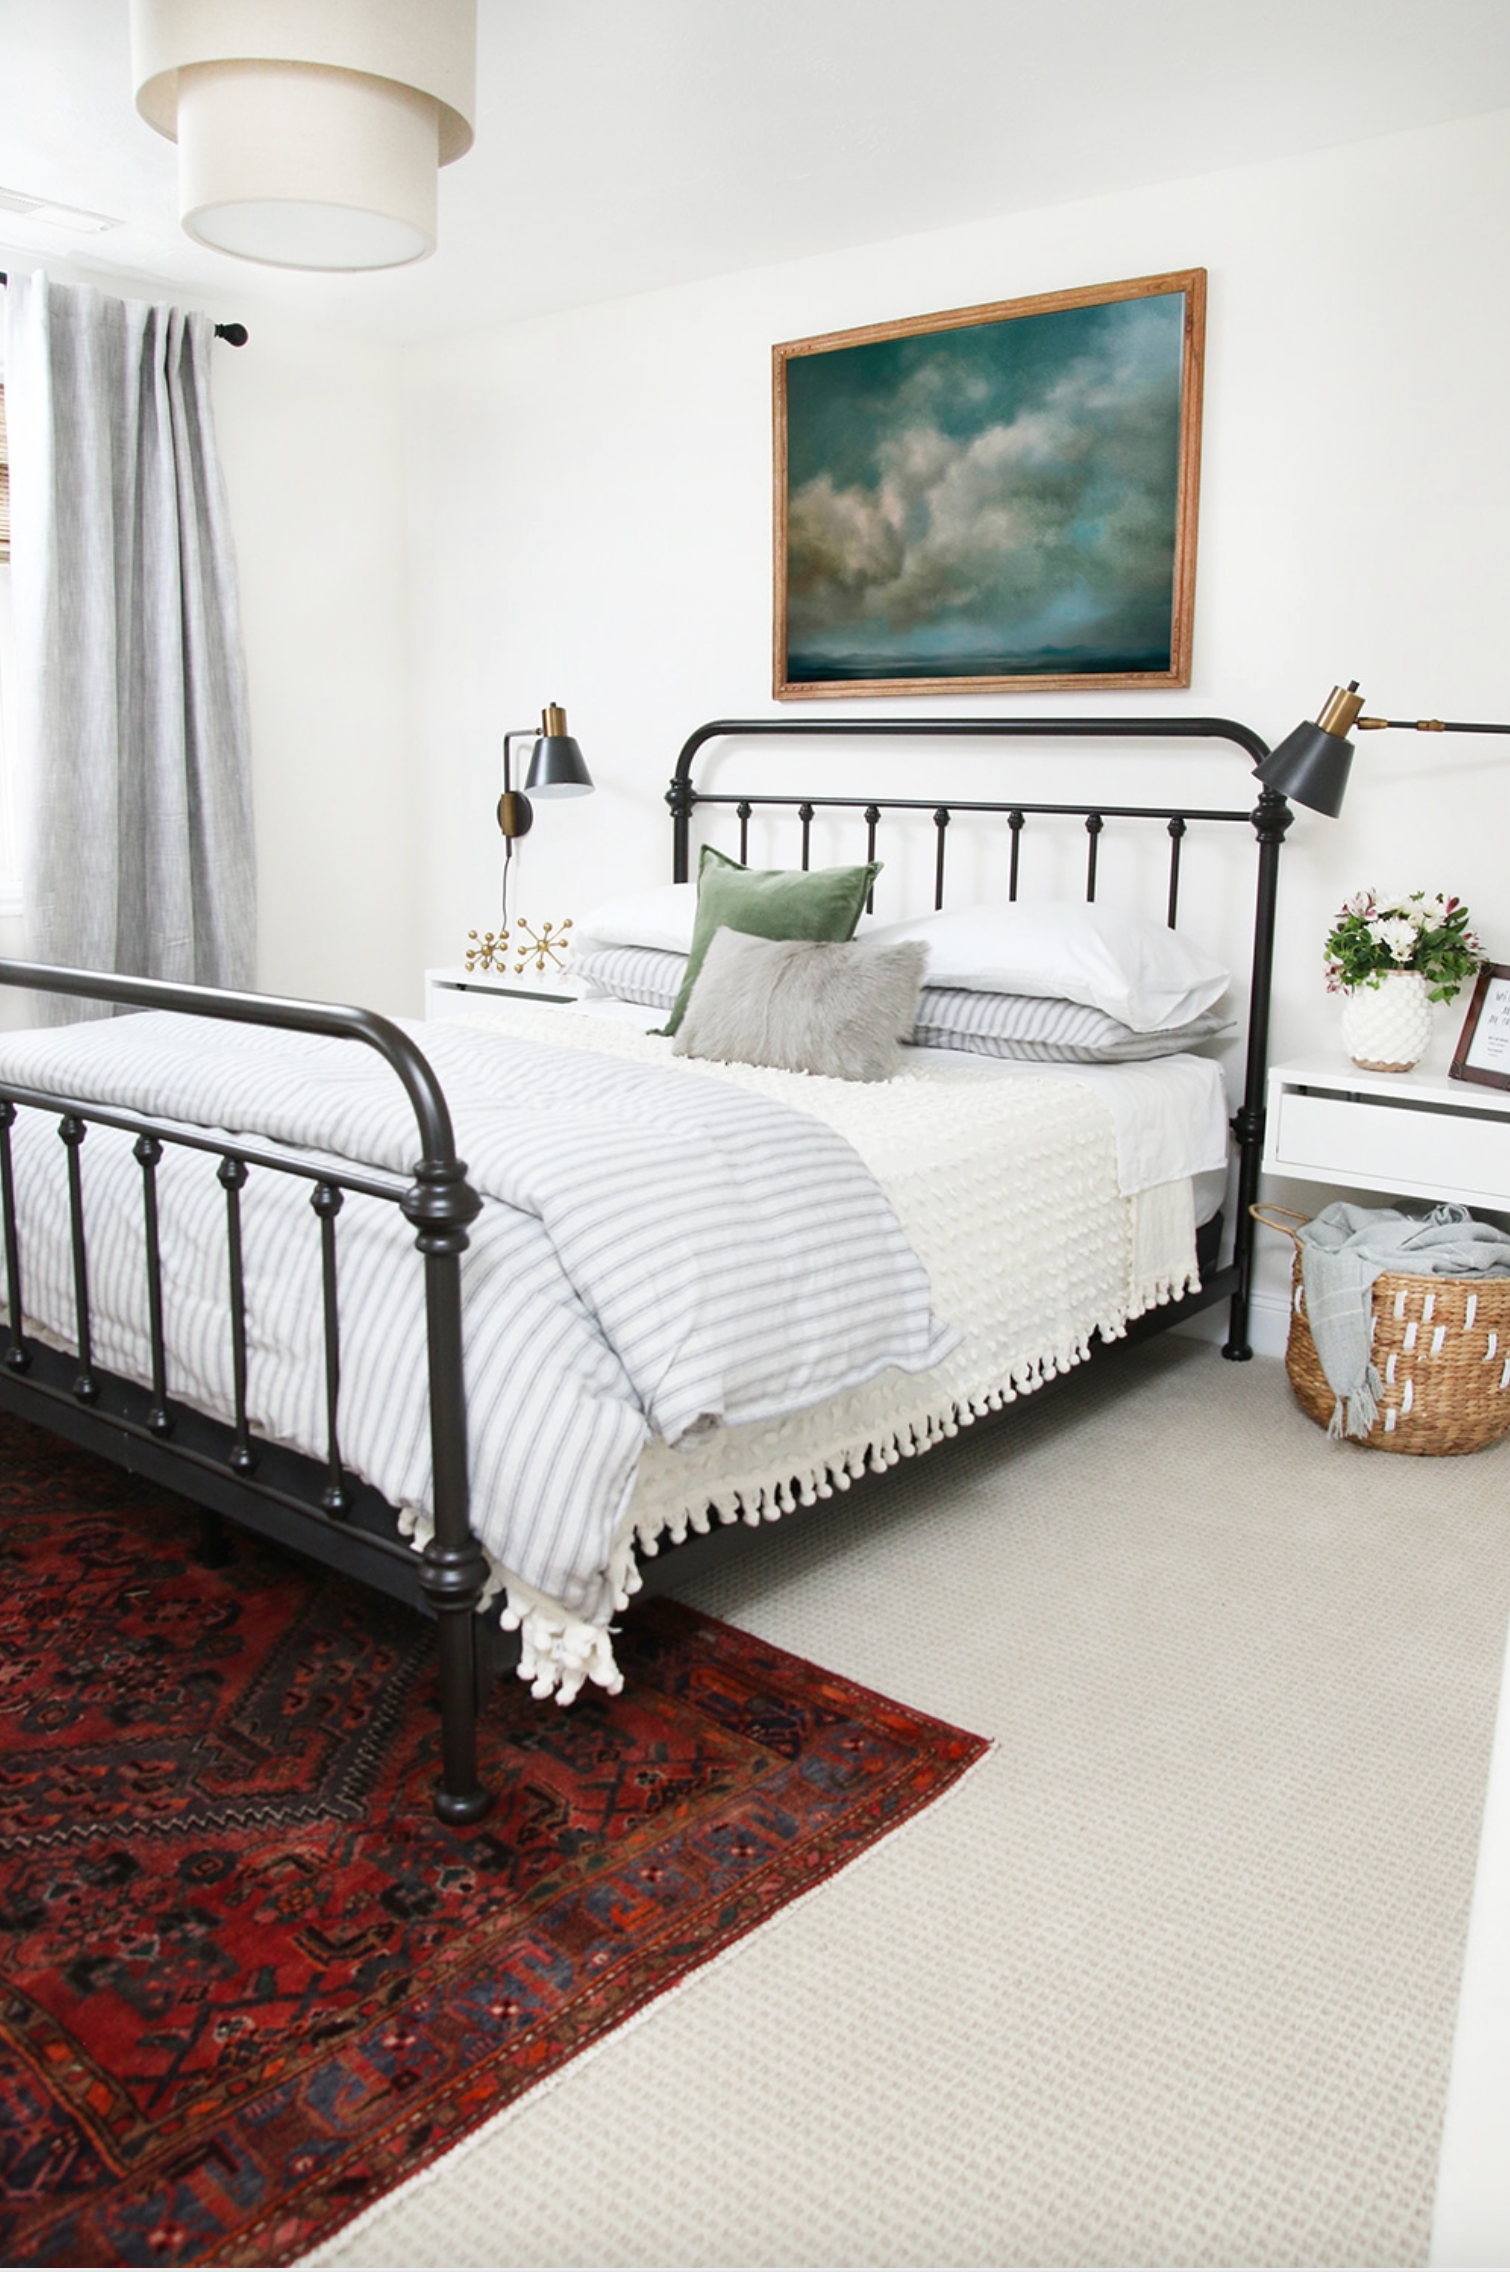 Chrislovesjulia Creates A Guest Room Anyone Would Love To Stay In Using Our Zanjan Persian Rug Guest Bedrooms Bedroom Inspirations Bedroom Design